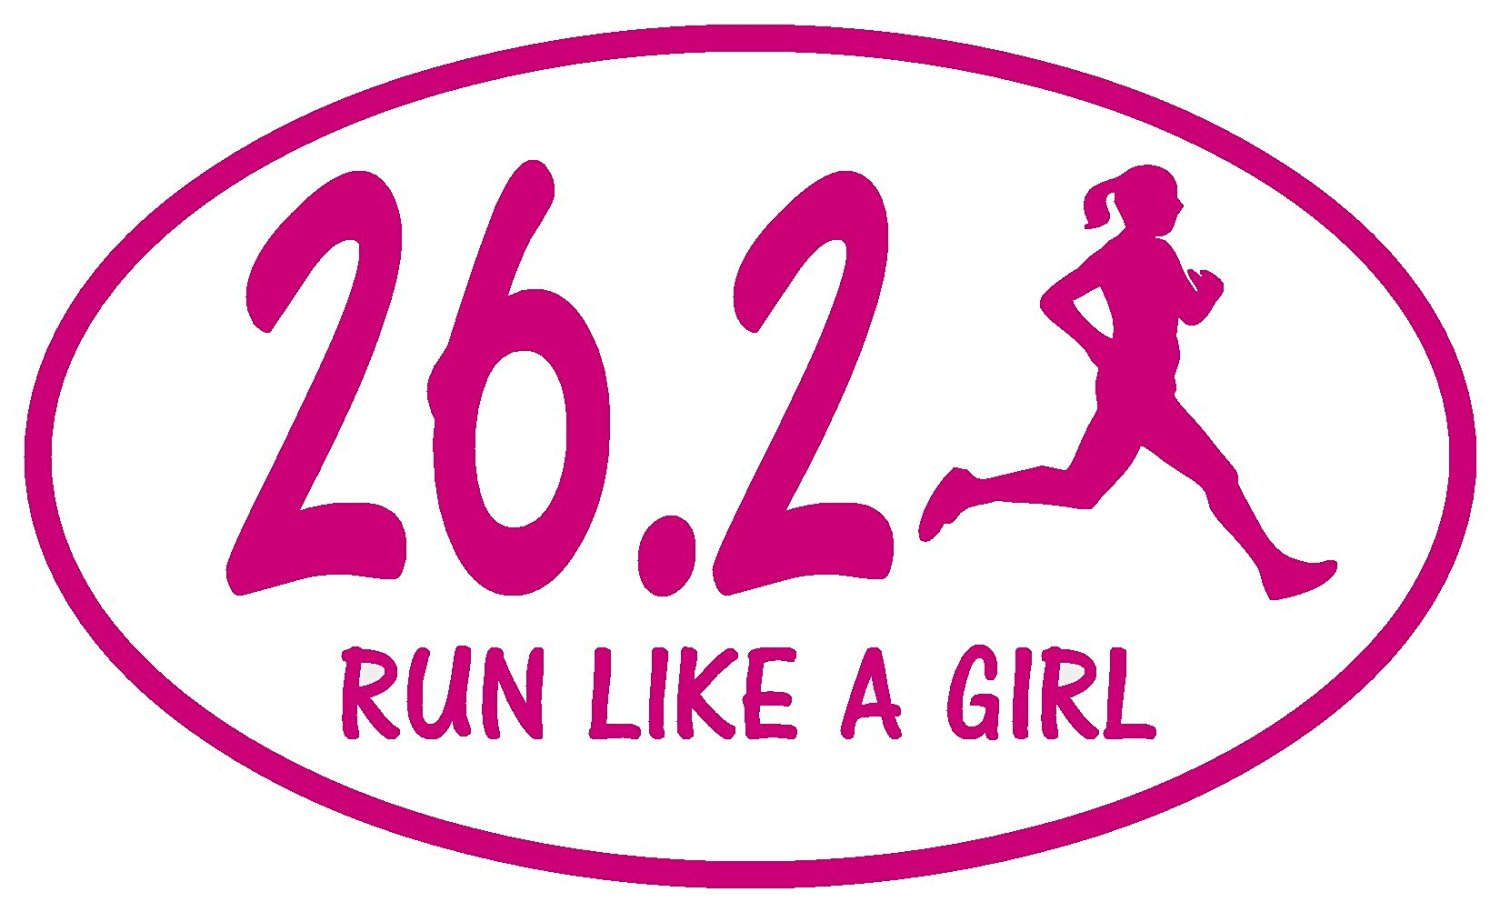 5k run like a girl Pink Oval Half Marathon Run Car Bumper Window Sticker Decal